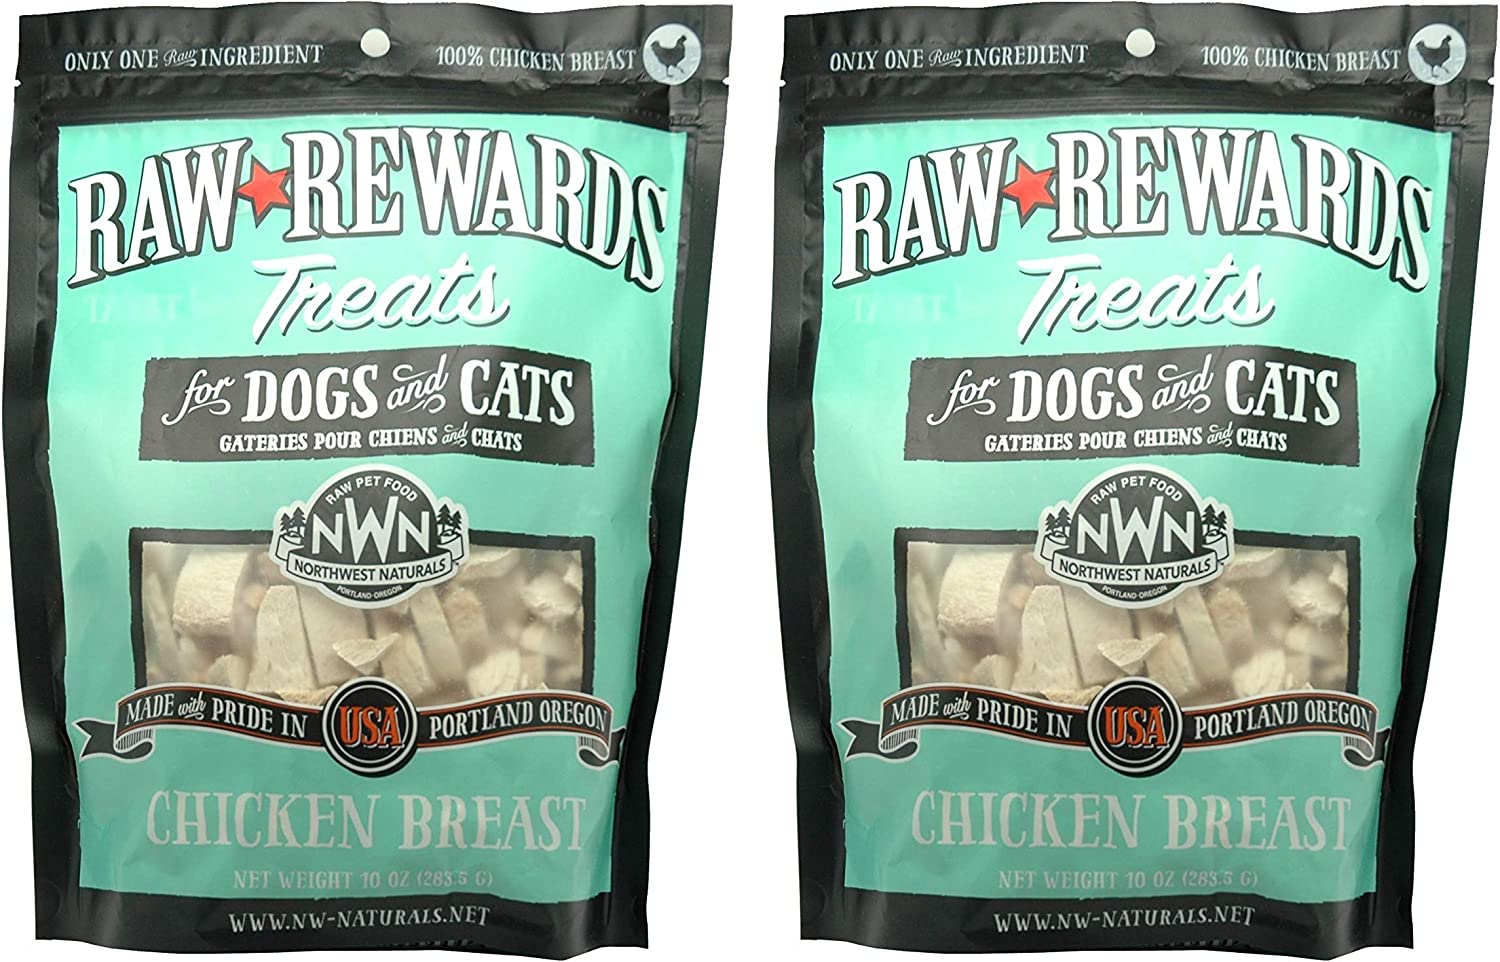 Northwest Naturals 2 Pack of Chicken Breast Raw Rewards, 10 Ounces Each, Freeze Dried Treats for Dogs and Cats